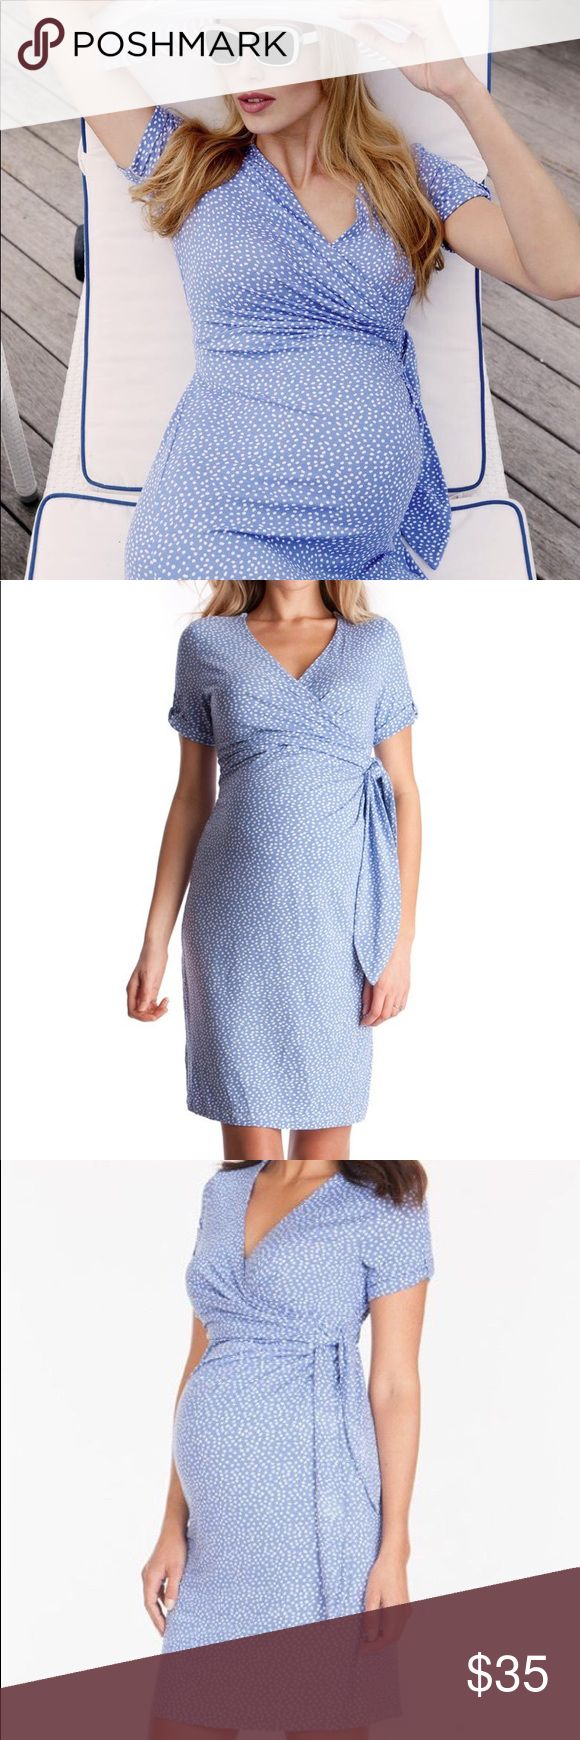 "Seraphine Baby Blue polka dot maternity dress sz 8 Seraphine maternity (and nursing) dress  ""fashionably pregnant"" At Seraphine, our maternity dresses are designed to fit, flatter and grow with your pregnancy curves; providing the perfect drape for before, during and after your nine months. Size 8 Baby blue polka dot   Crossover v neckline for nursing Soft stretch jersey Above the knee 95% viscose, 5% elastane  Condition: like new,  no visible signs of wear Seraphine Dresses Midi"